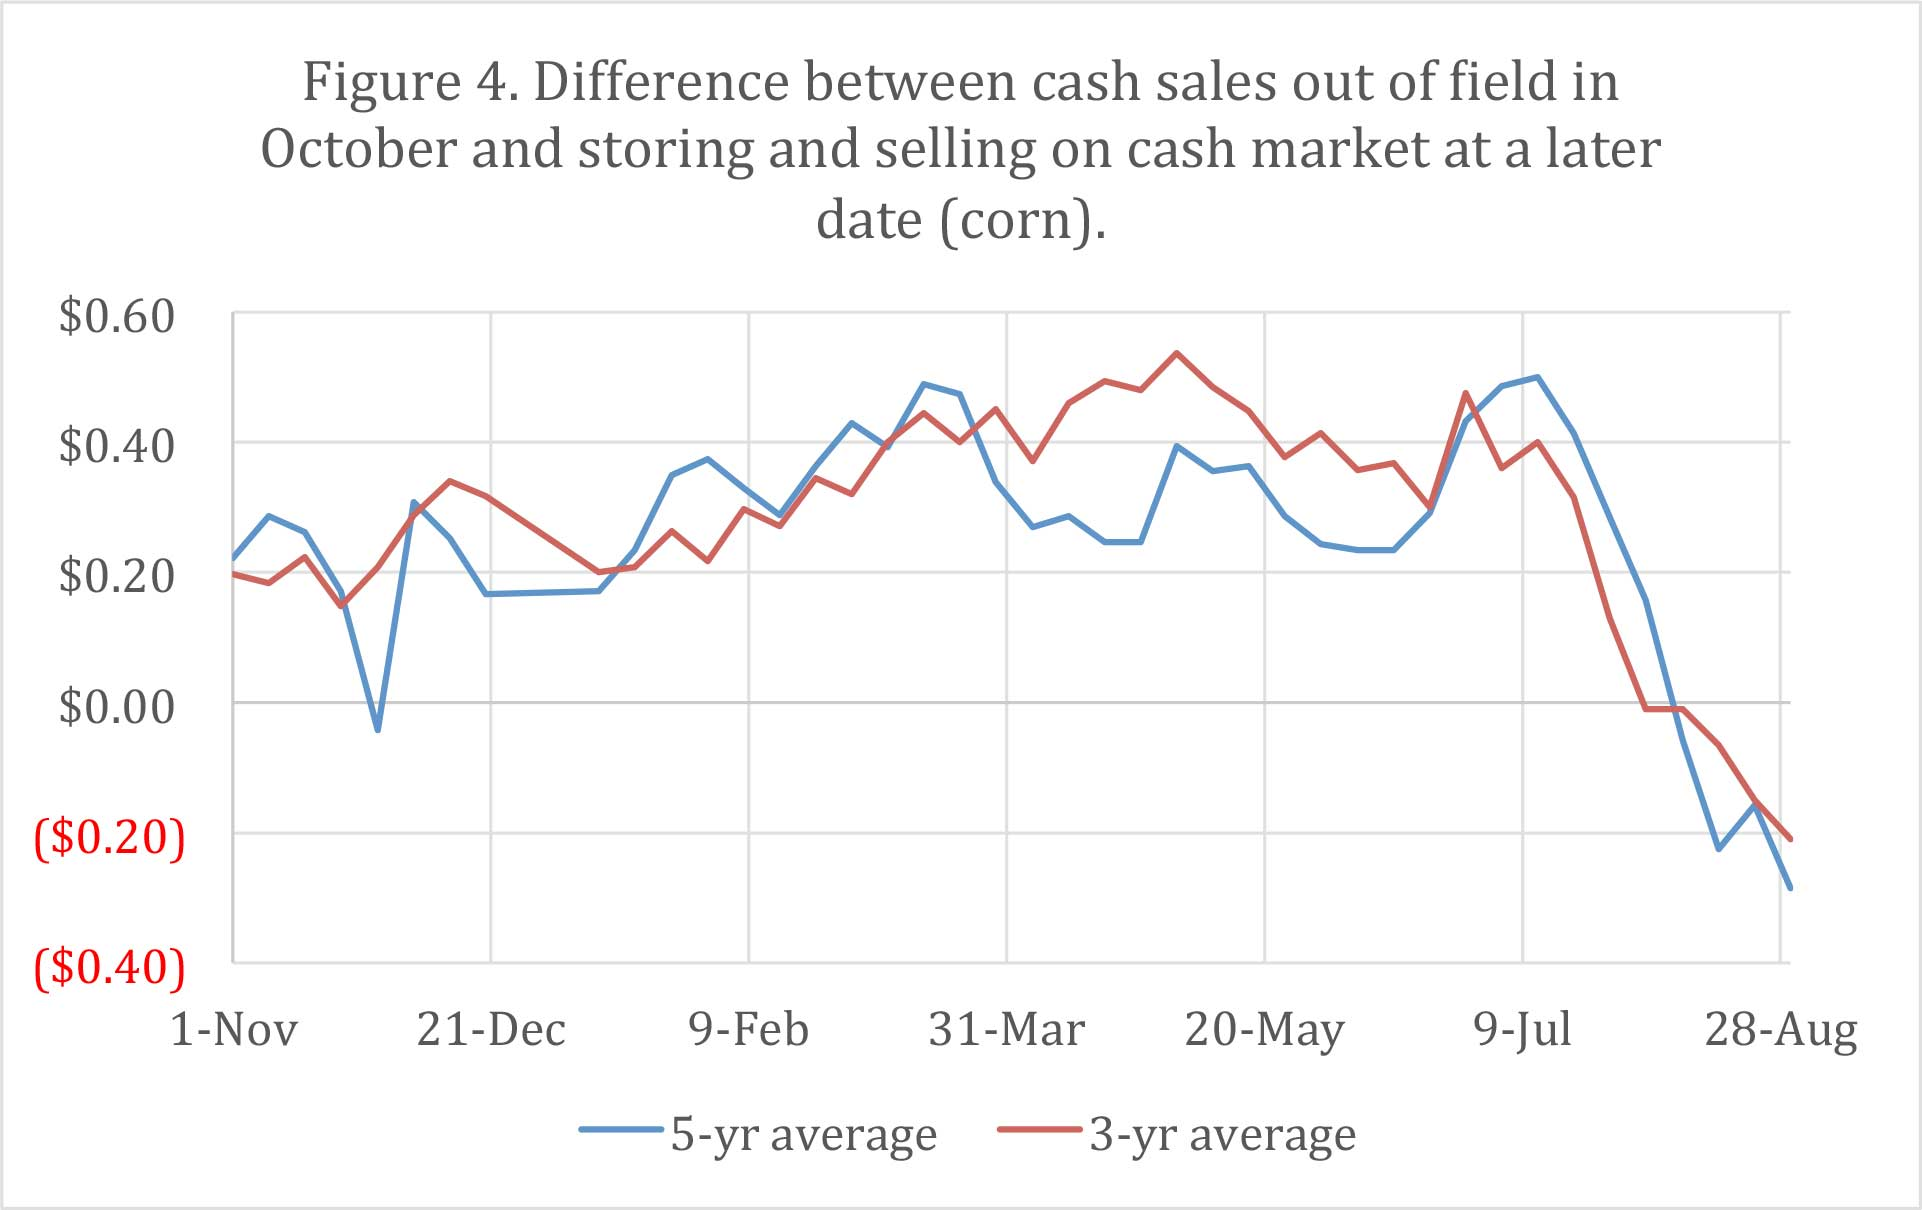 Figure 4. Difference between cash sales out of Gield in October and storing and selling on cash market at a later date (corn).